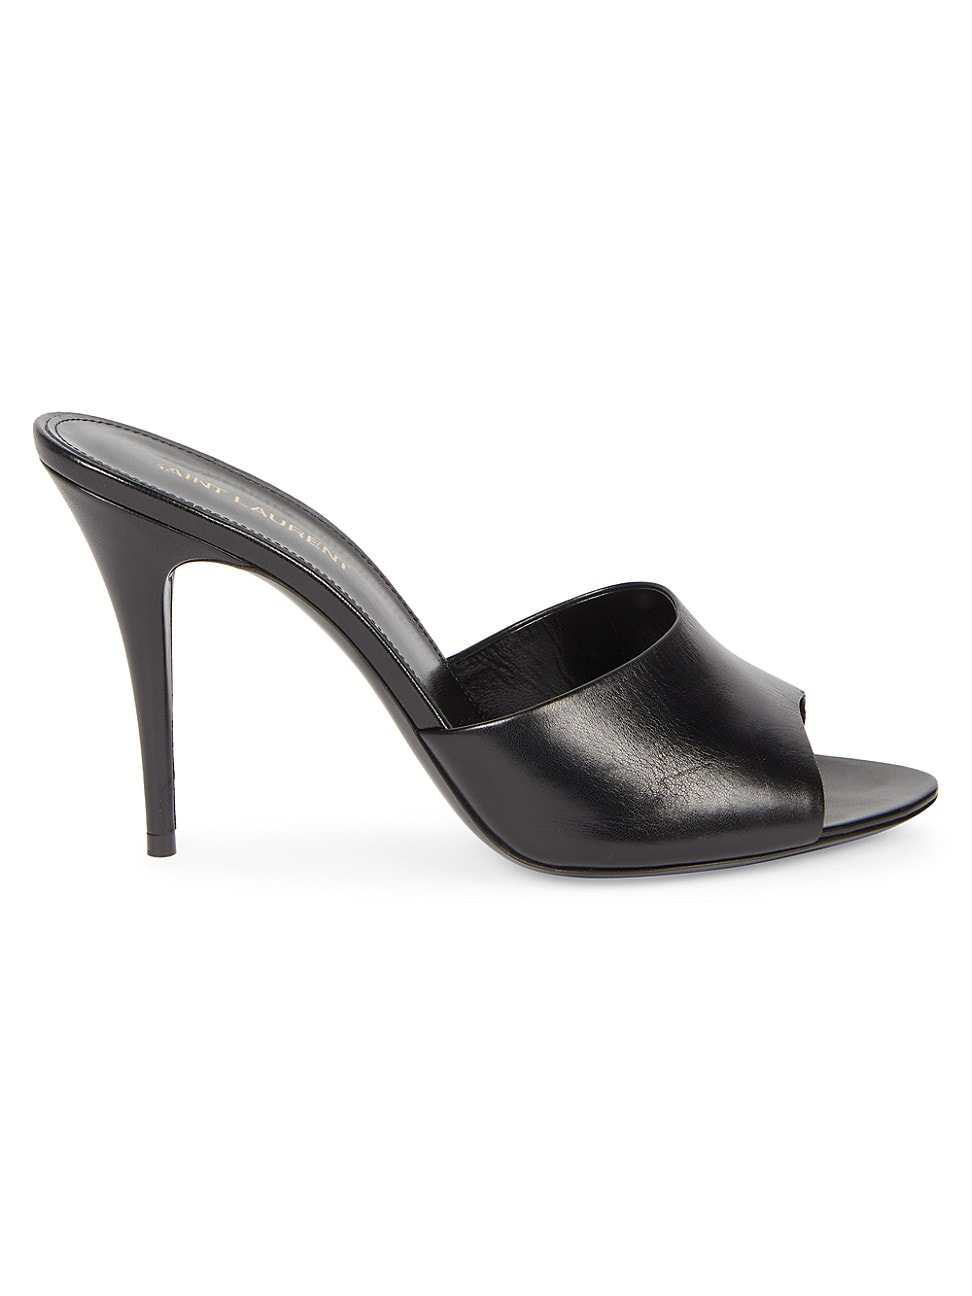 Saint Laurent WOMEN'S SEXY LEATHER MULES